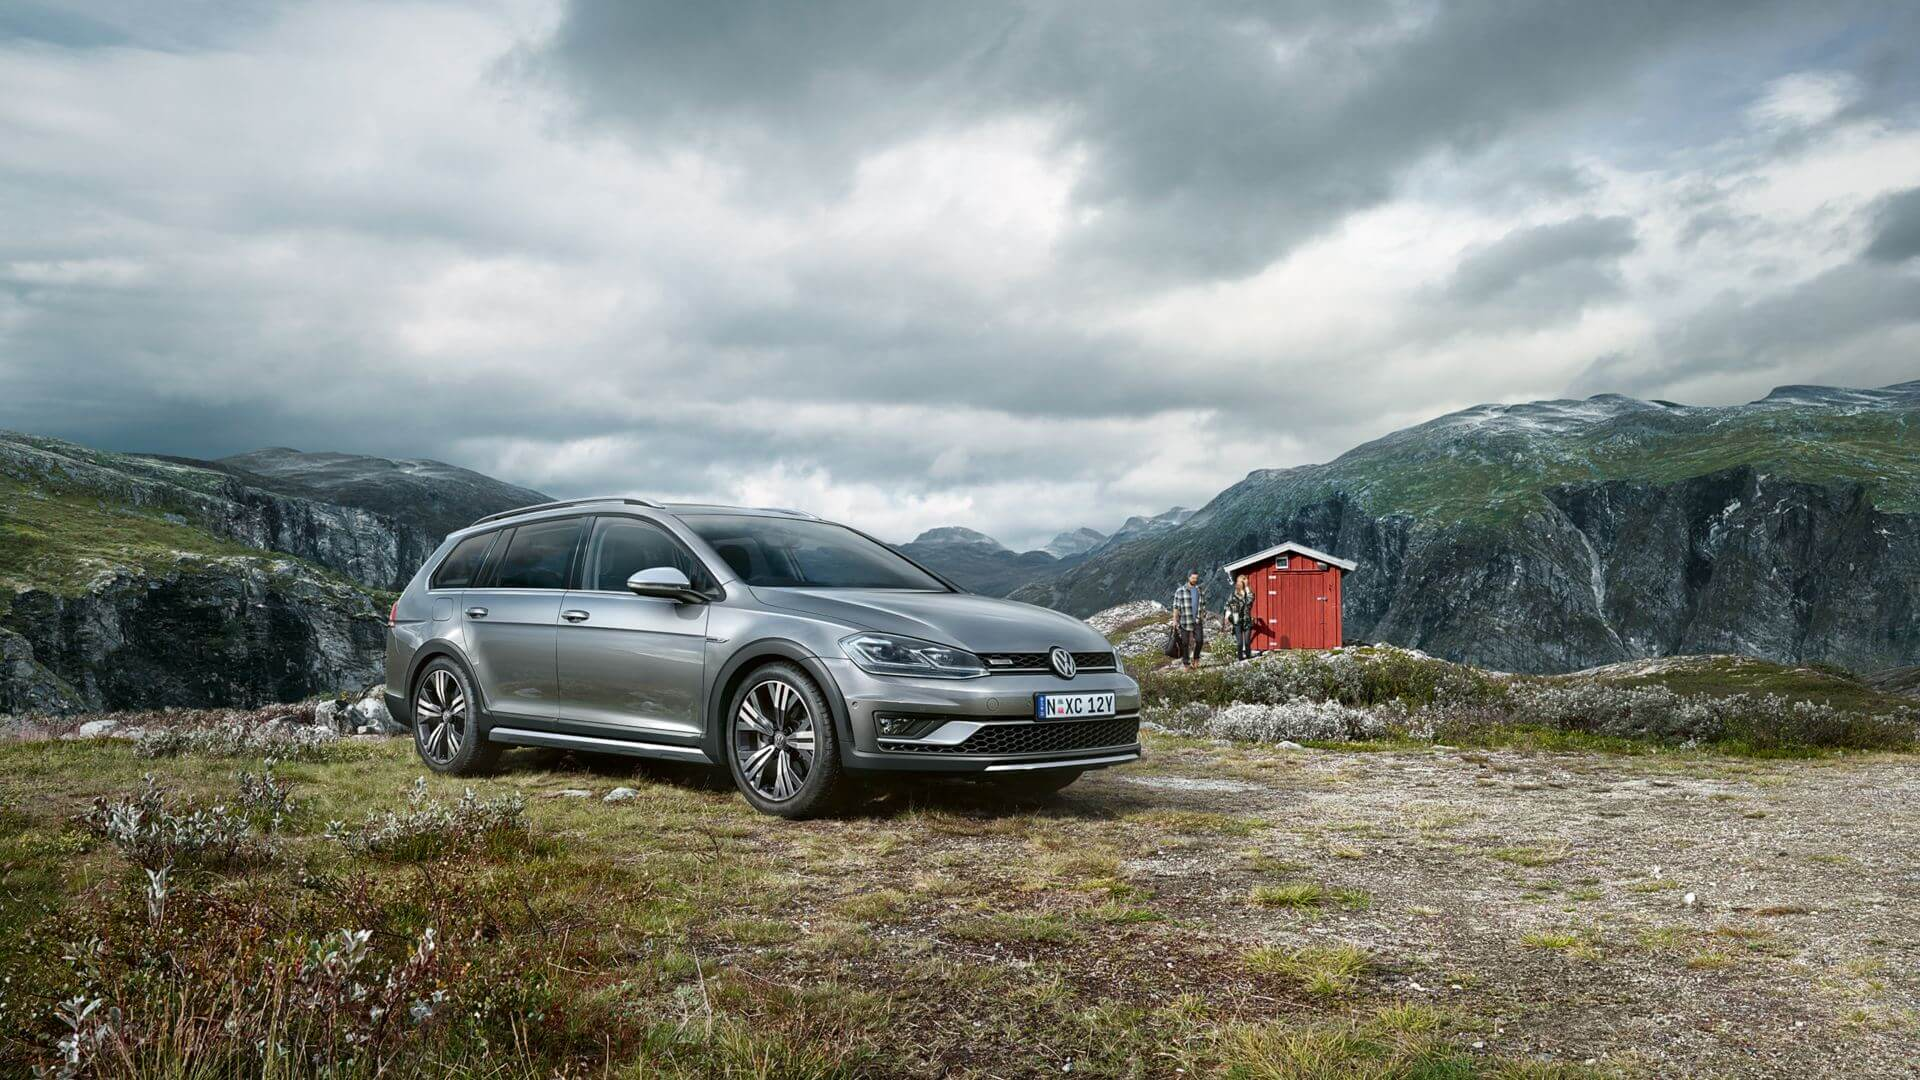 <strong>Golf Alltrack</strong><br>All tracks lead to adventure. Image